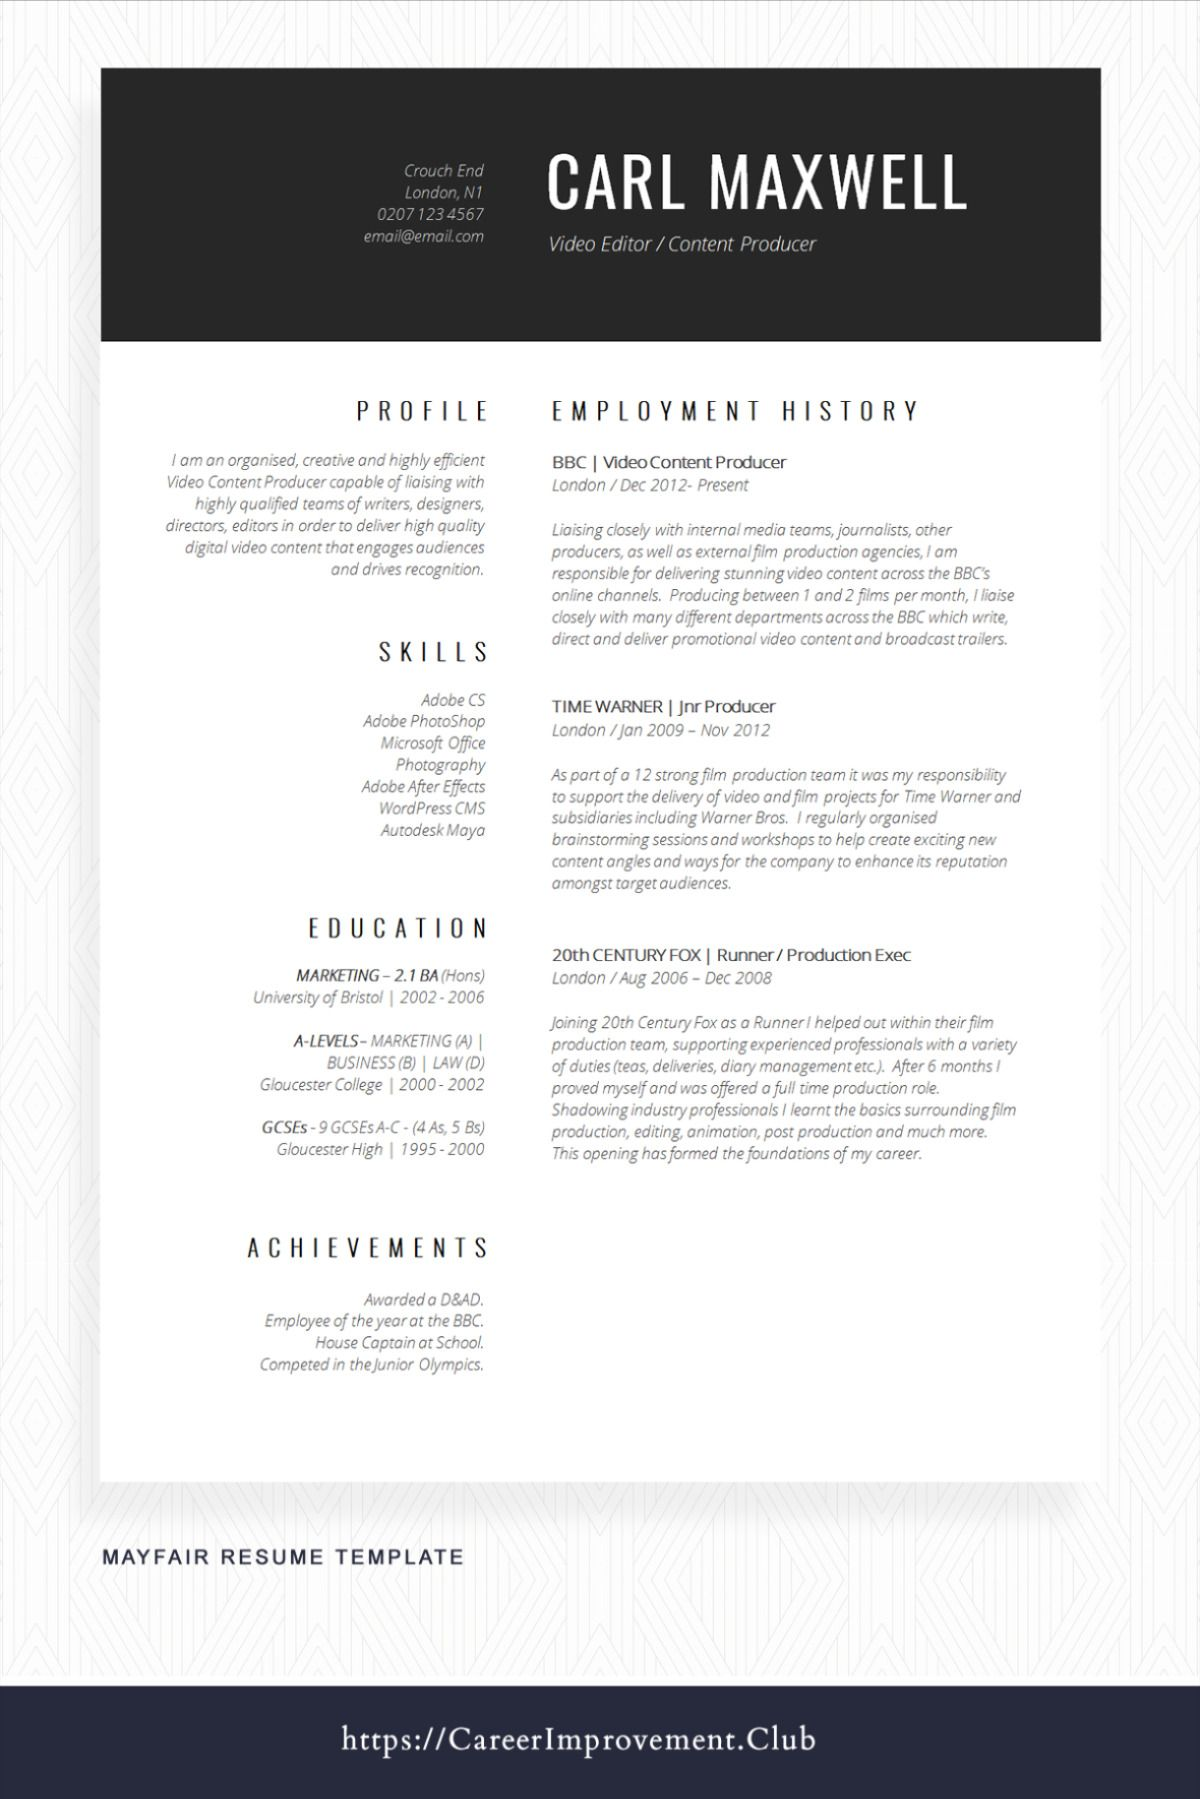 This Simple Yet Professional Resume Example Will Help Your Job